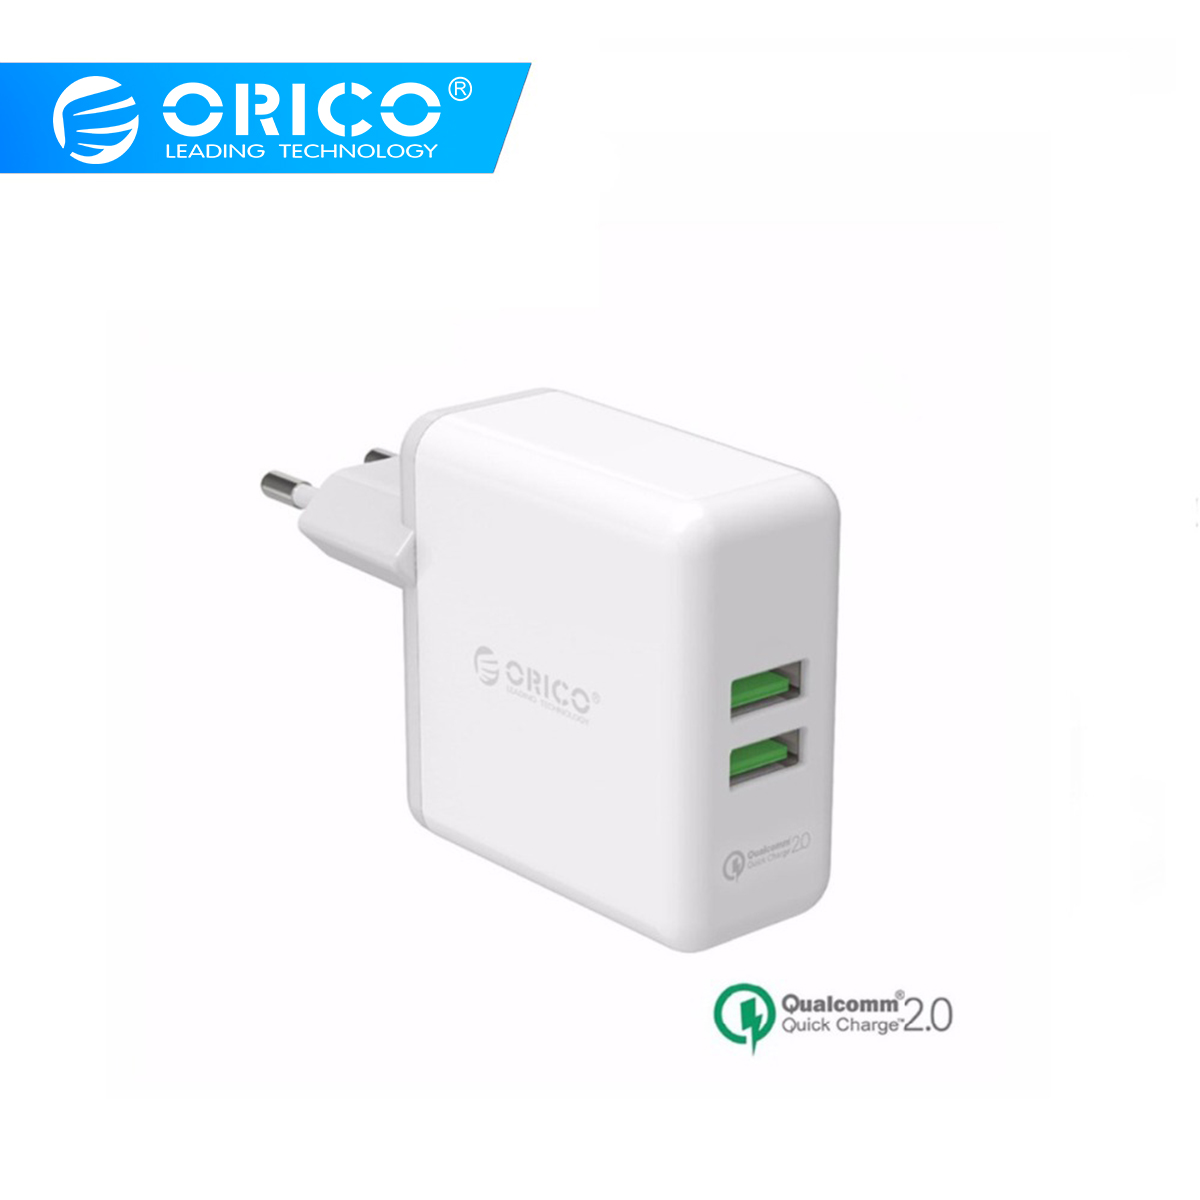 ORICO USB Quick Charger QC2.0 Dual Ports Wall Charger 36W Mobile Phone Charger for Apple Samsung Xiaomi Huawei Portable WhiteORICO USB Quick Charger QC2.0 Dual Ports Wall Charger 36W Mobile Phone Charger for Apple Samsung Xiaomi Huawei Portable White